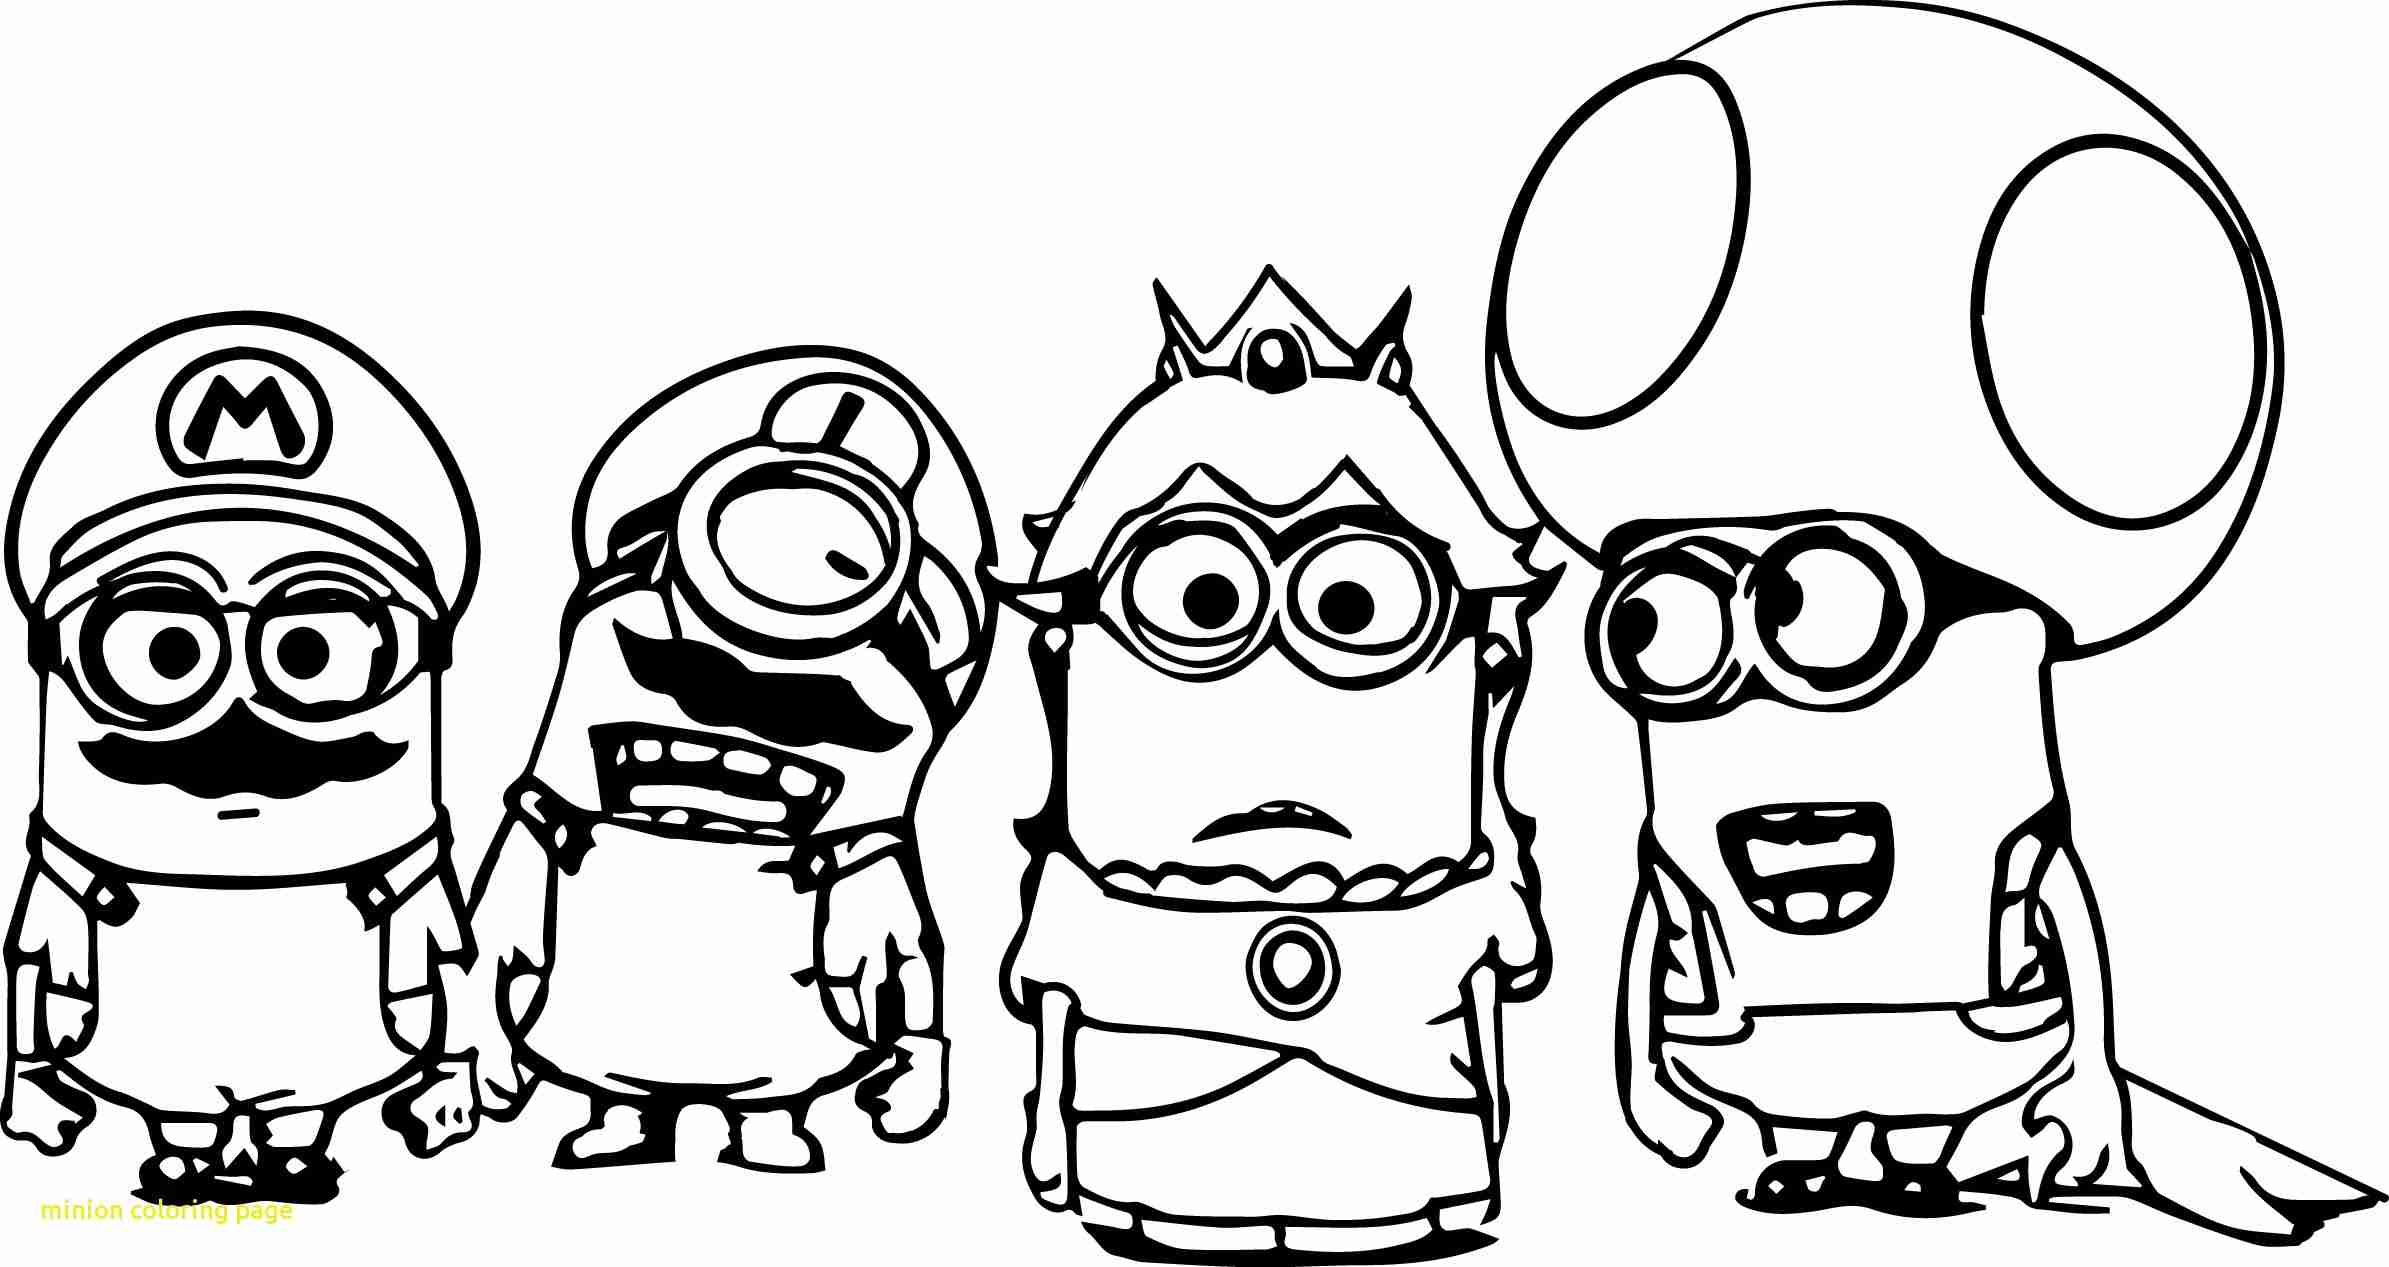 Kleurplaten Minions Mandala.The Best Free Prepossessing Coloring Page Images Download From 109